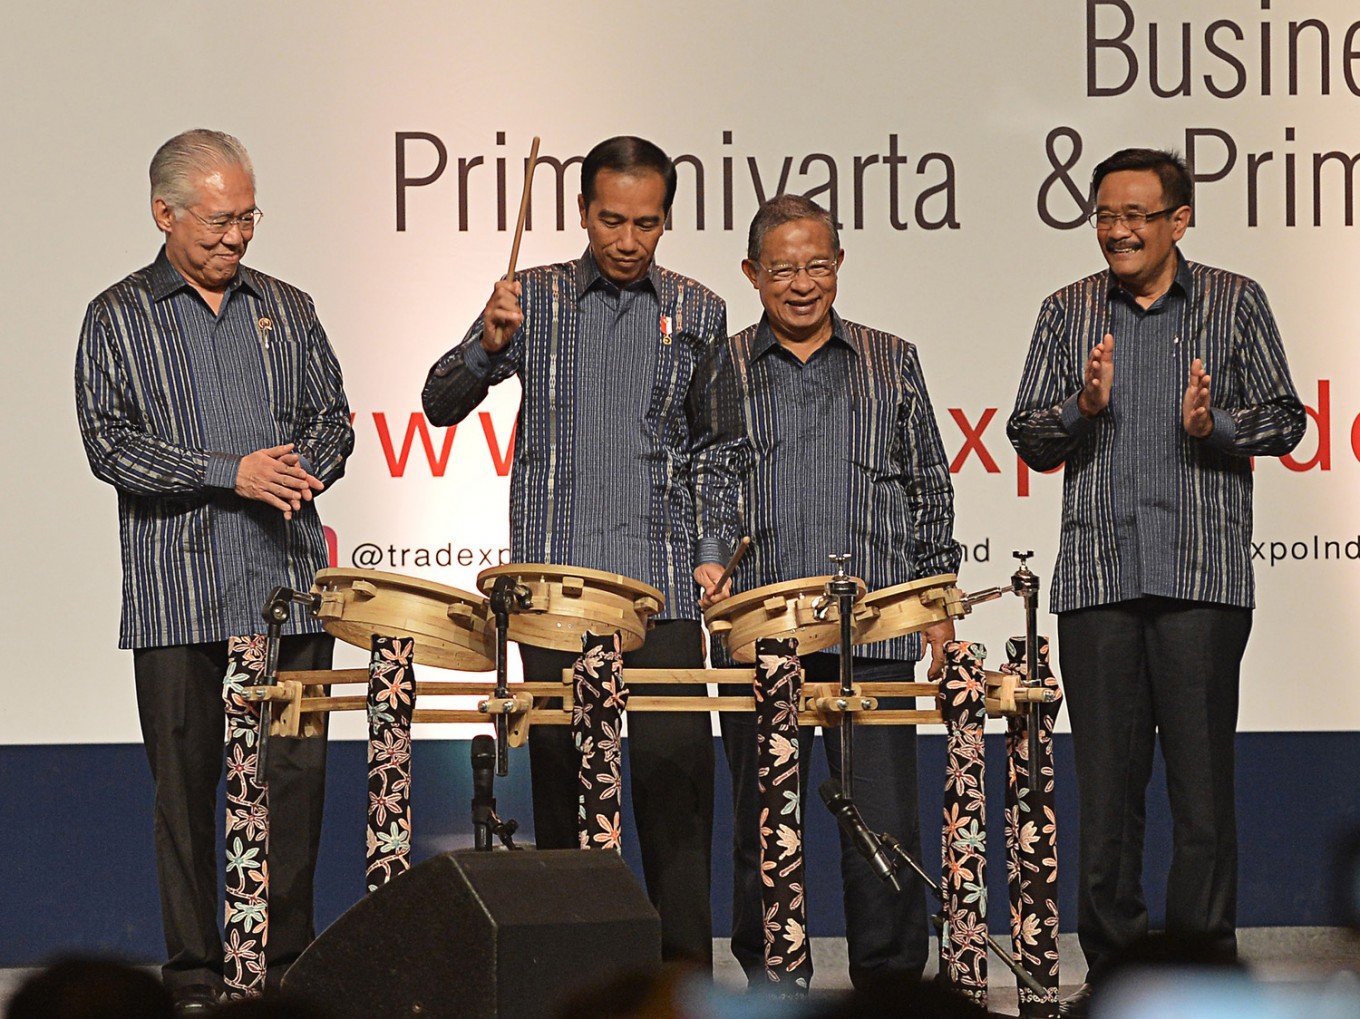 Indonesia eyes weapons export market in Qatar